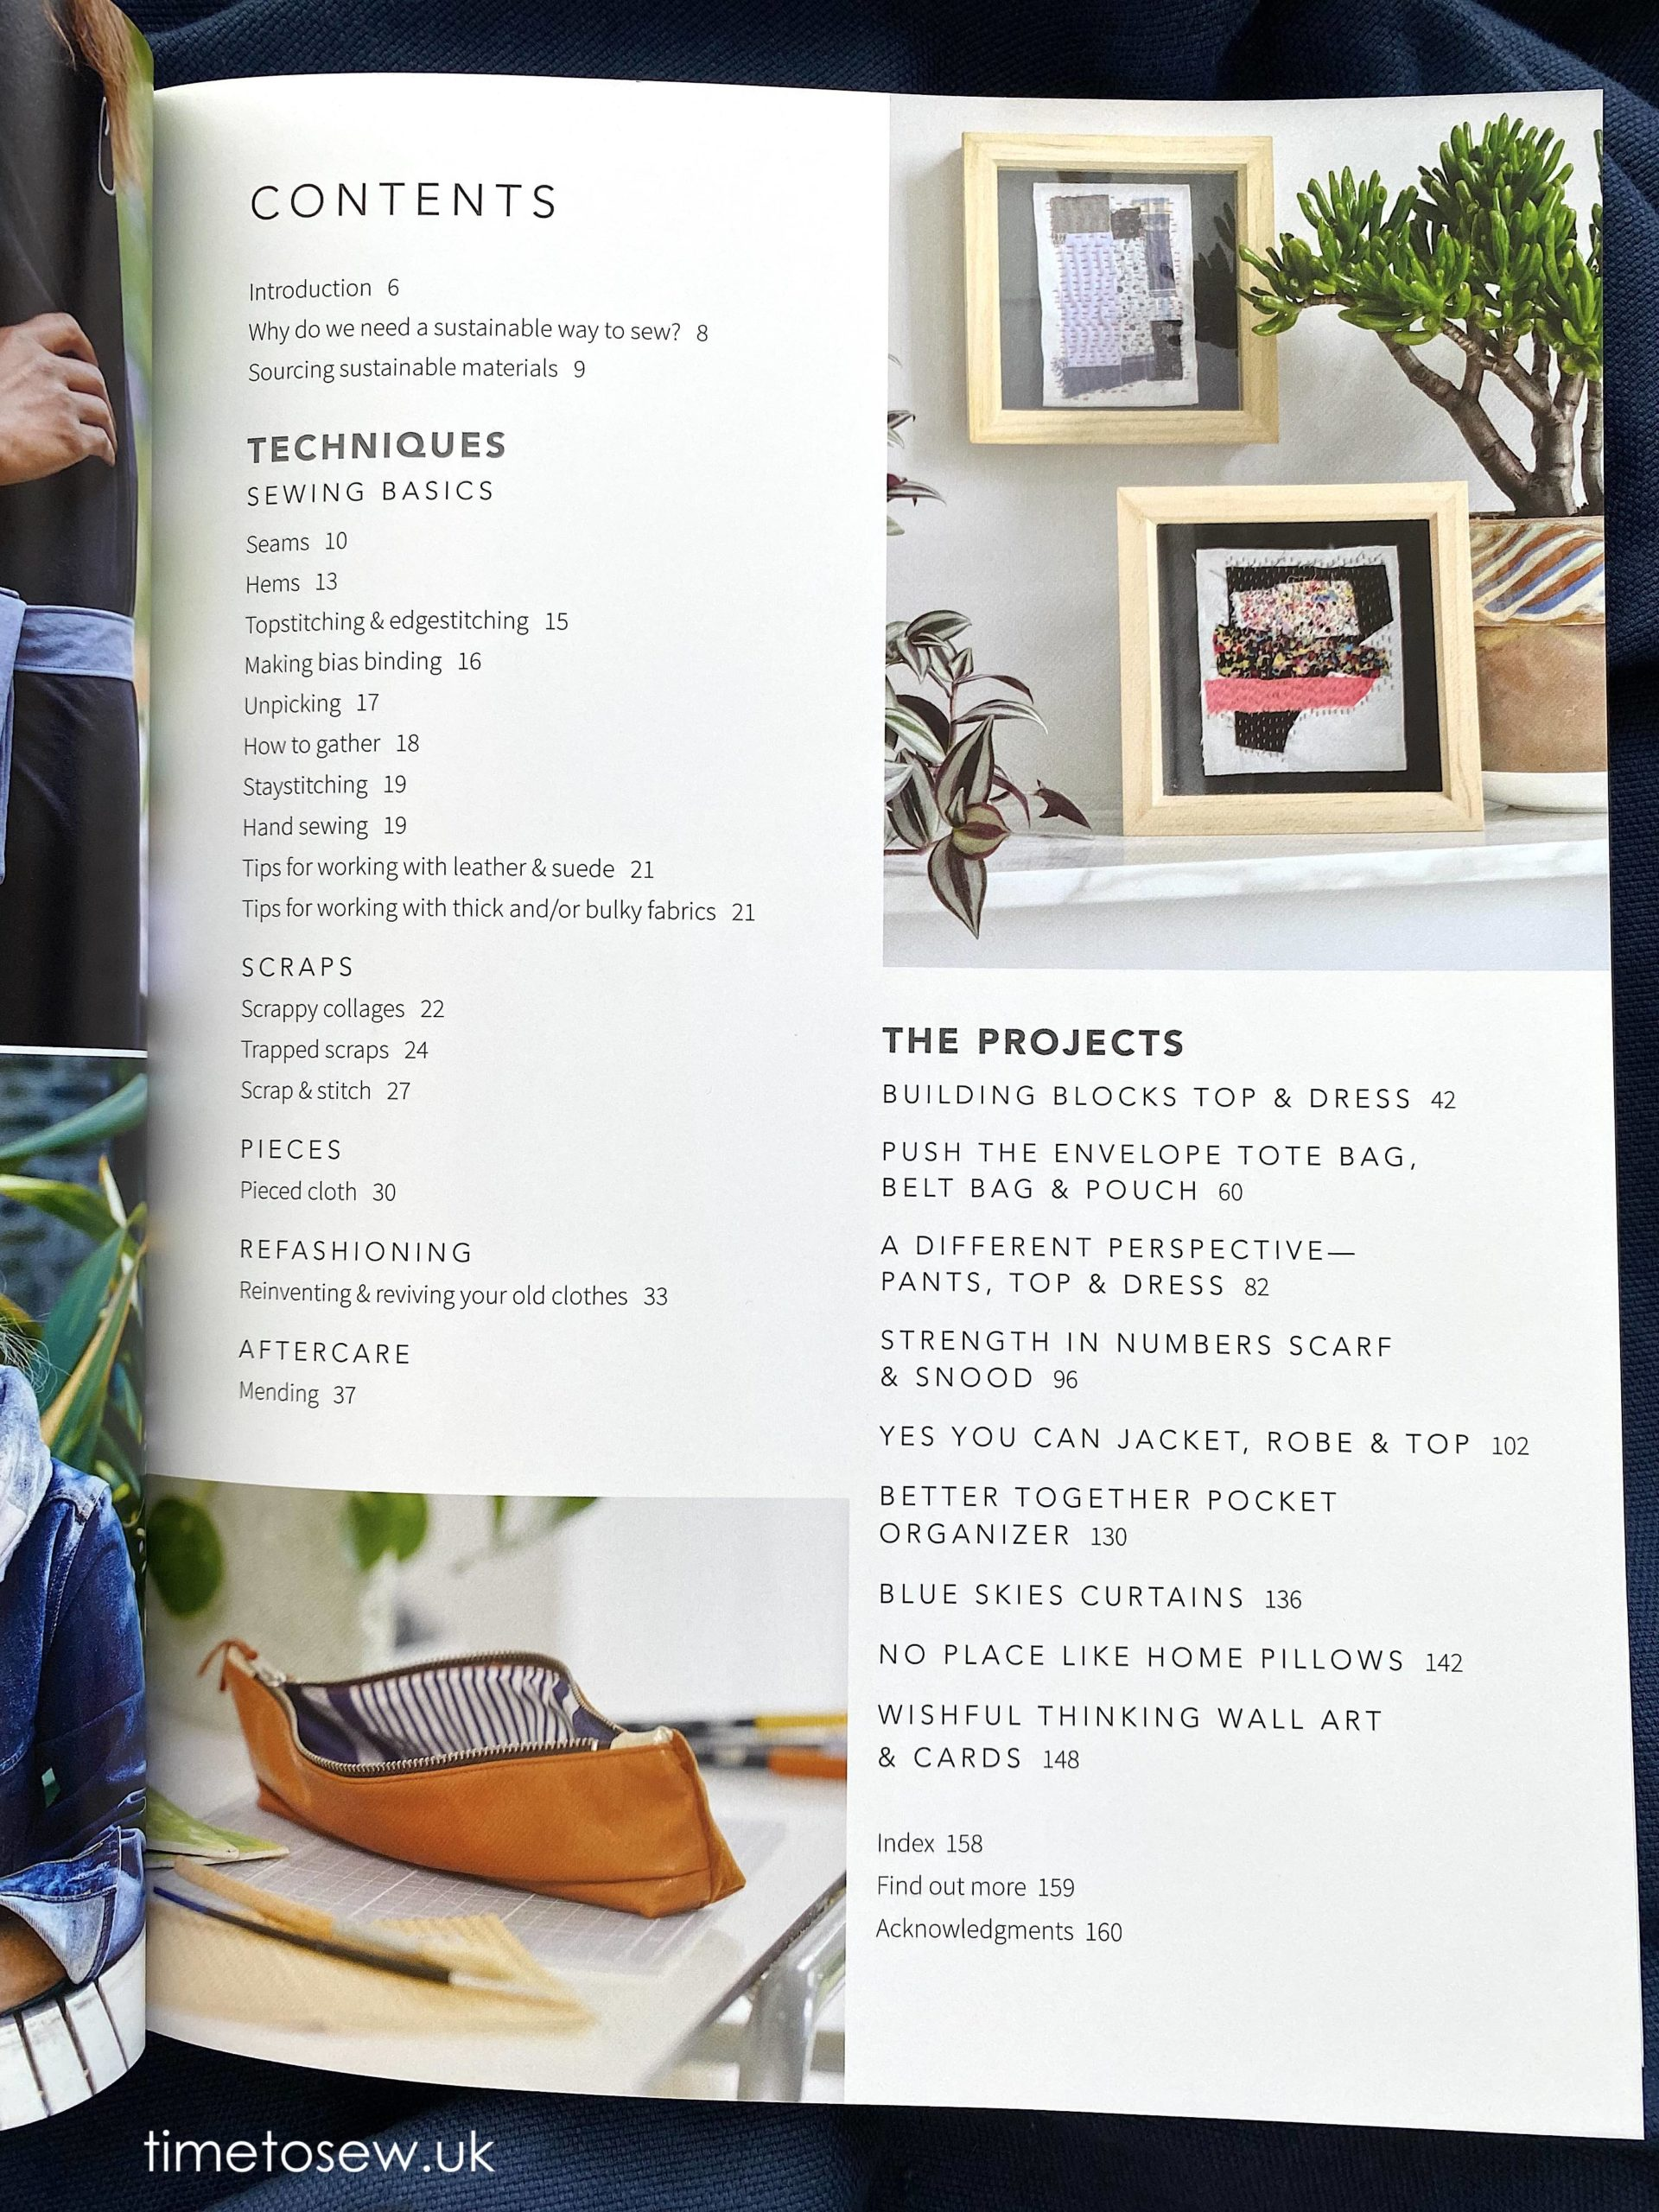 How to Sew Sustainably contents